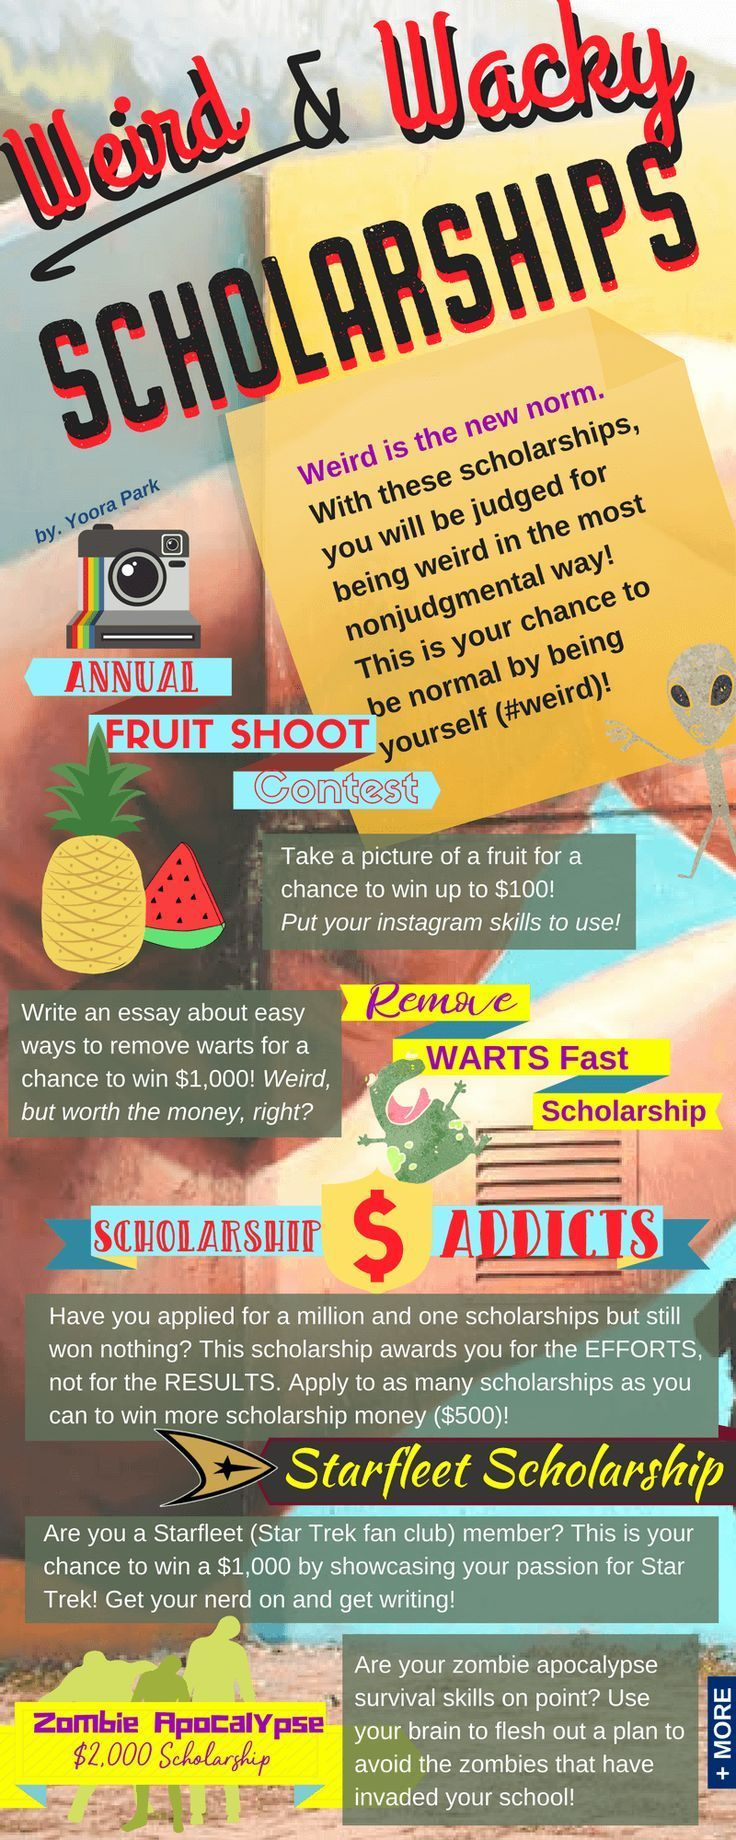 Weird is the new norm. With these #scholarships, you will be judged for being weird in the most nonjudgmental way! This is your chance to be normal by being yourself (#weird)!